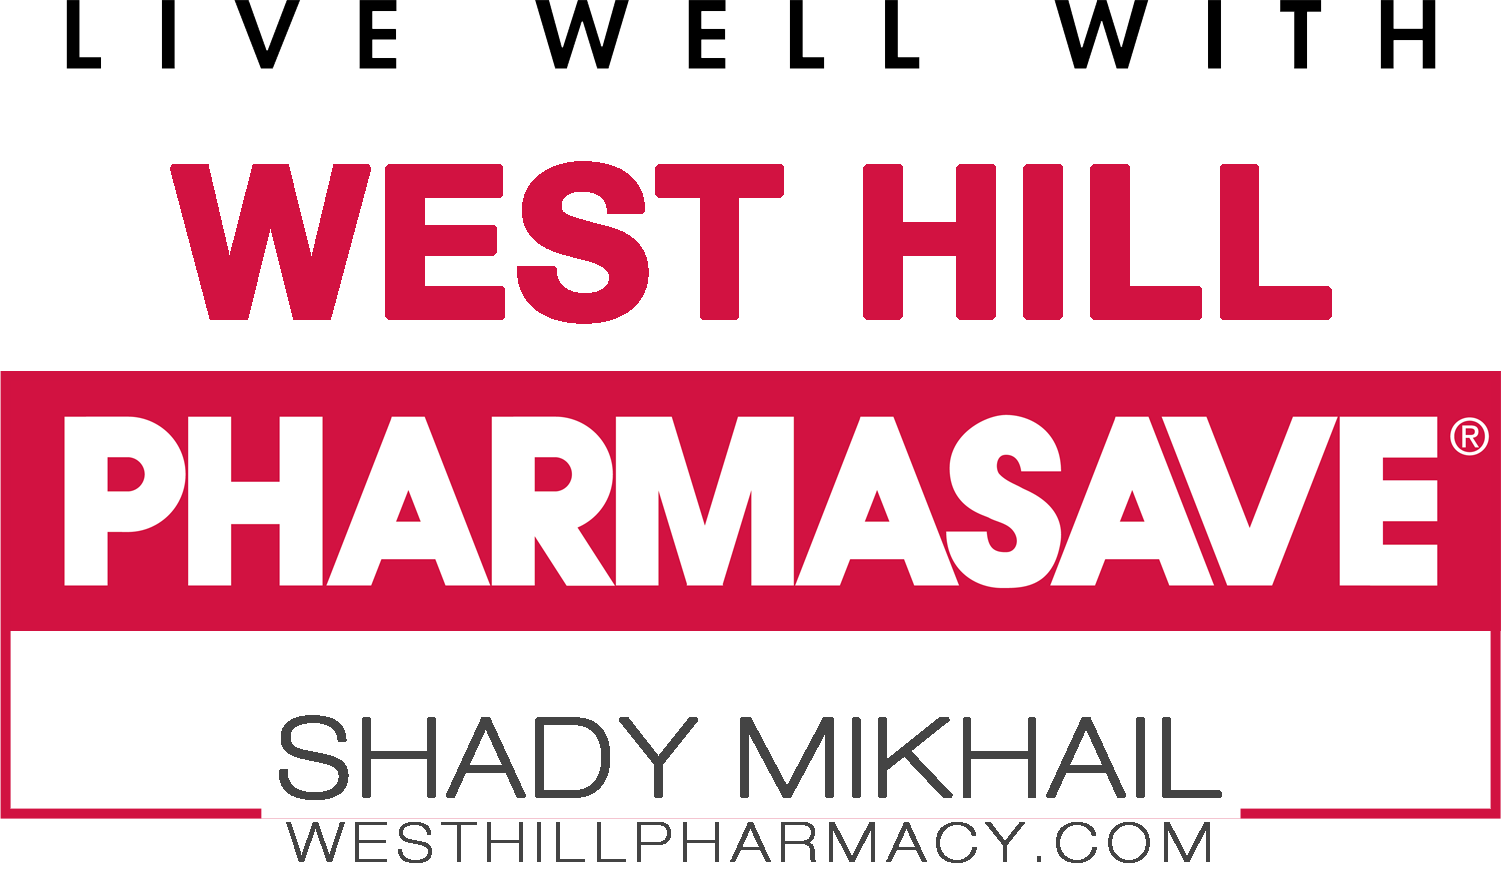 west-hill-pharmasave